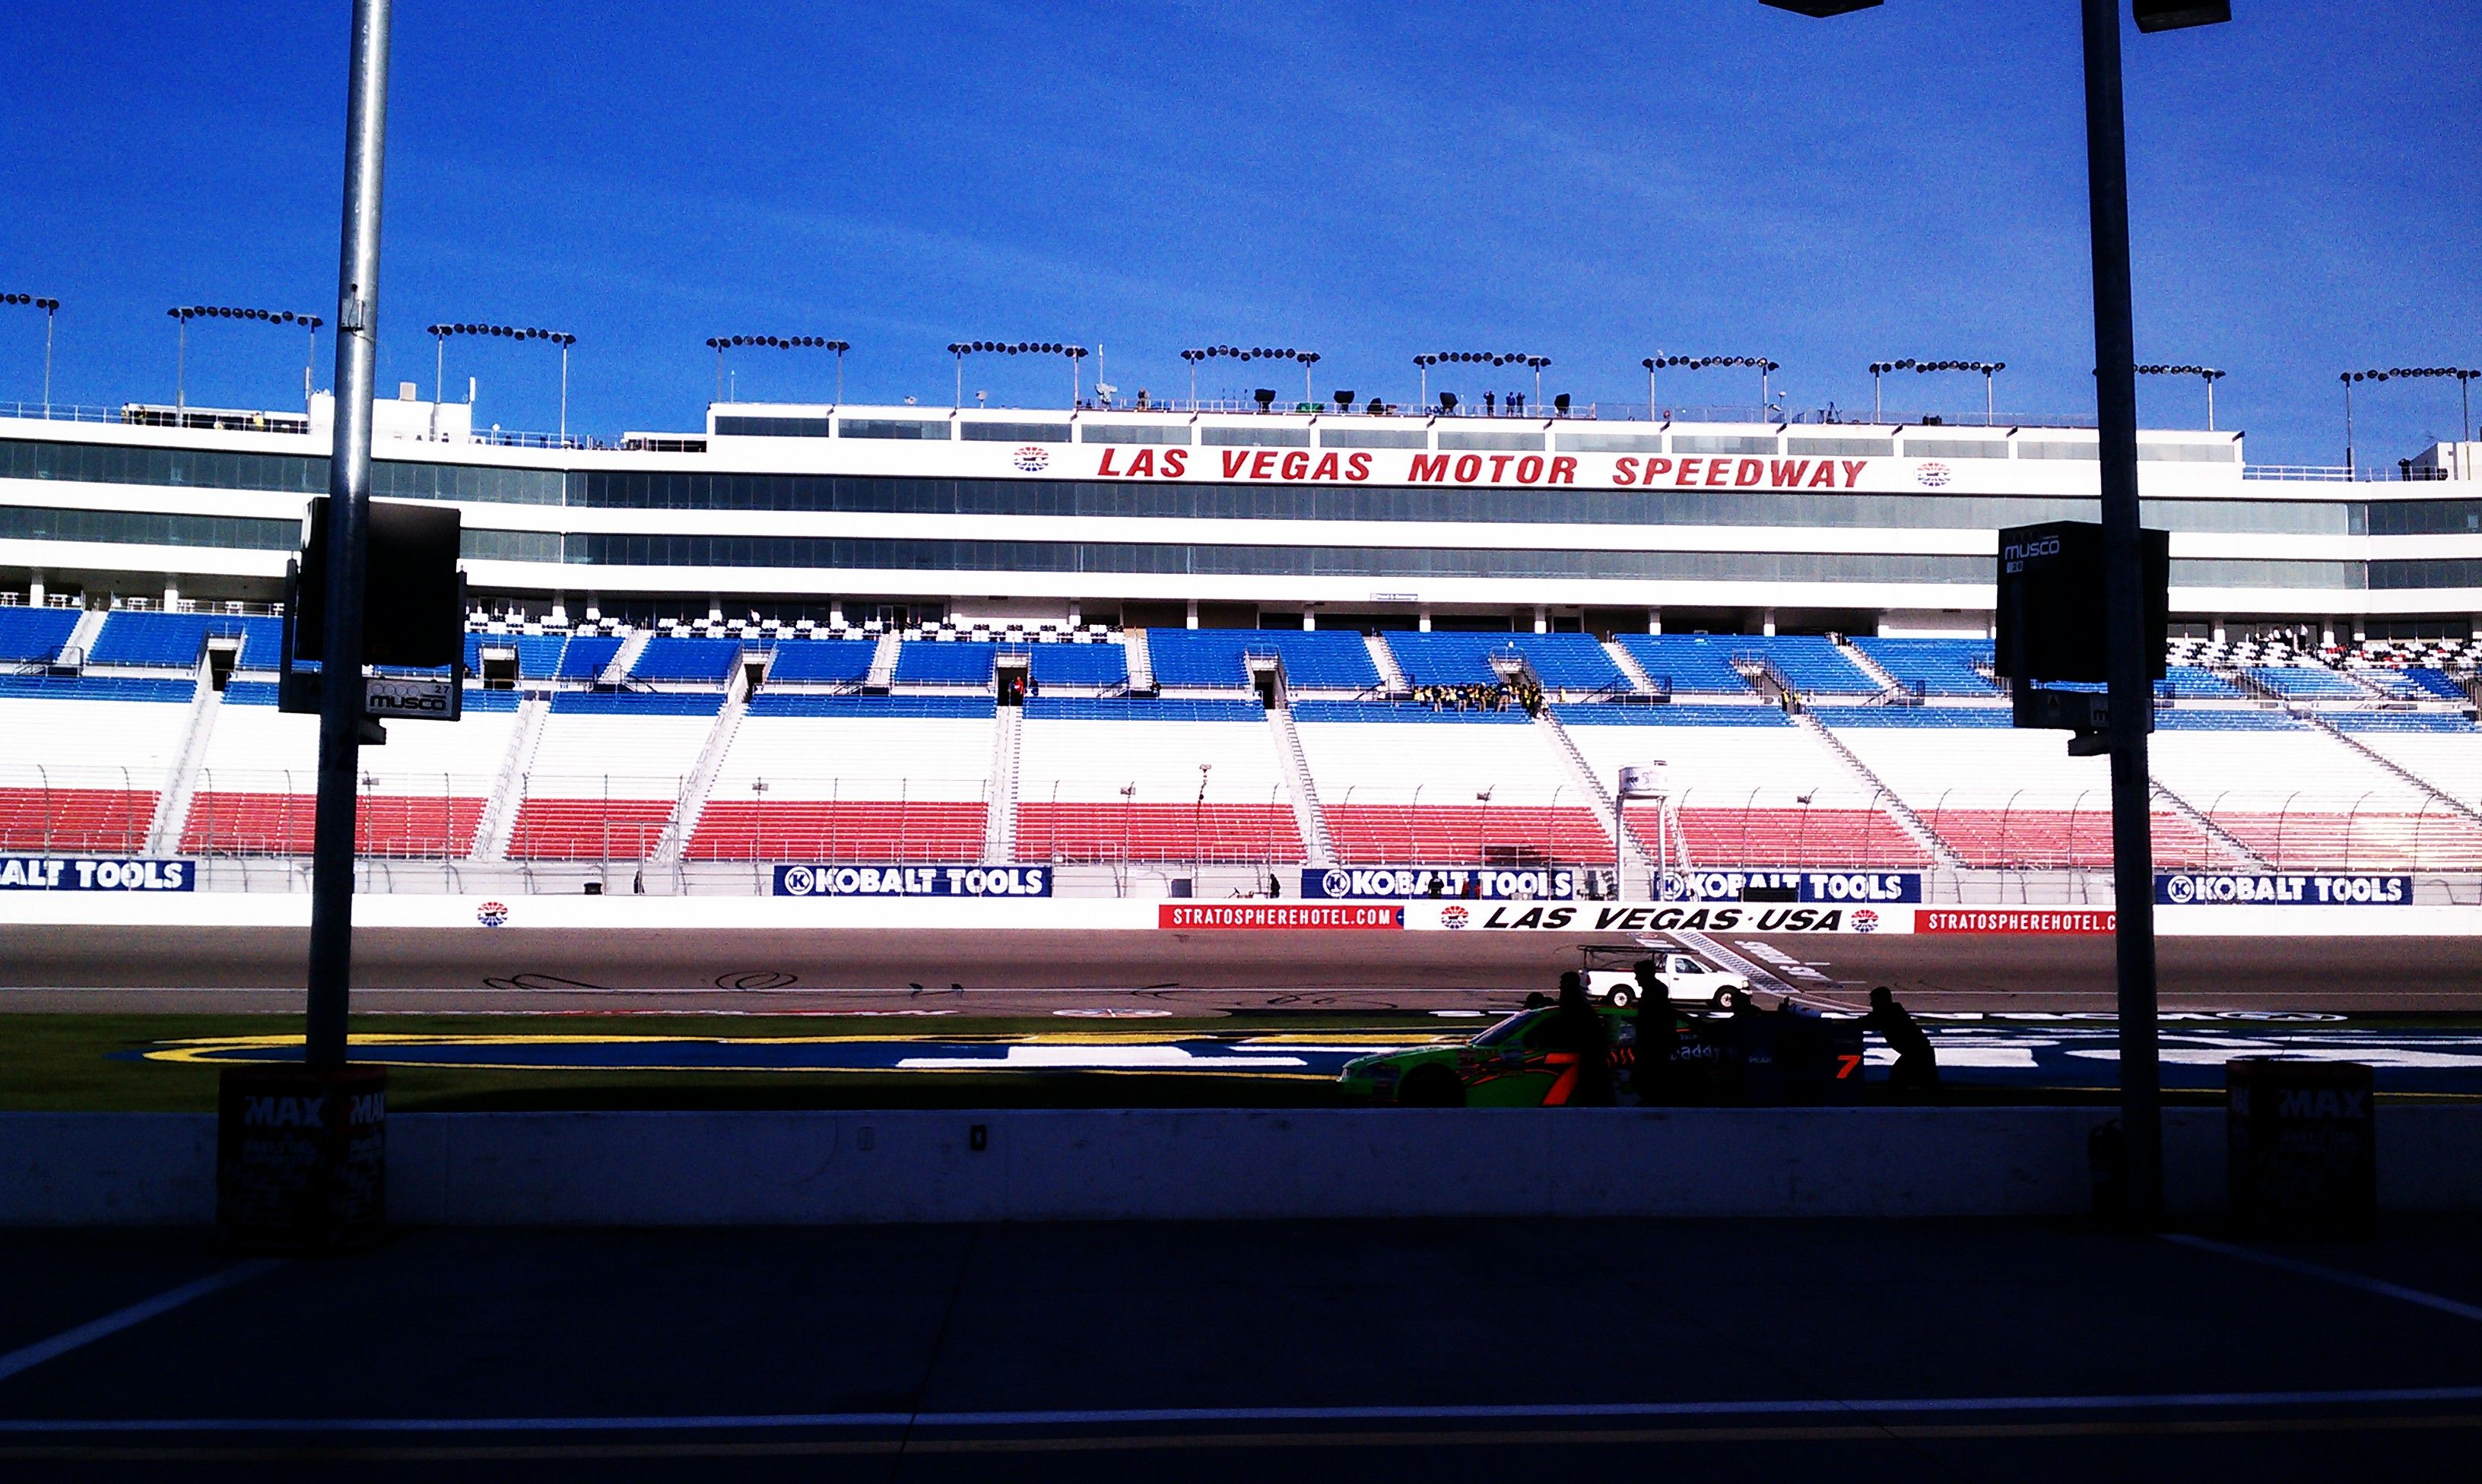 Nascar Las Vegas Motor Speedway Been There Done That